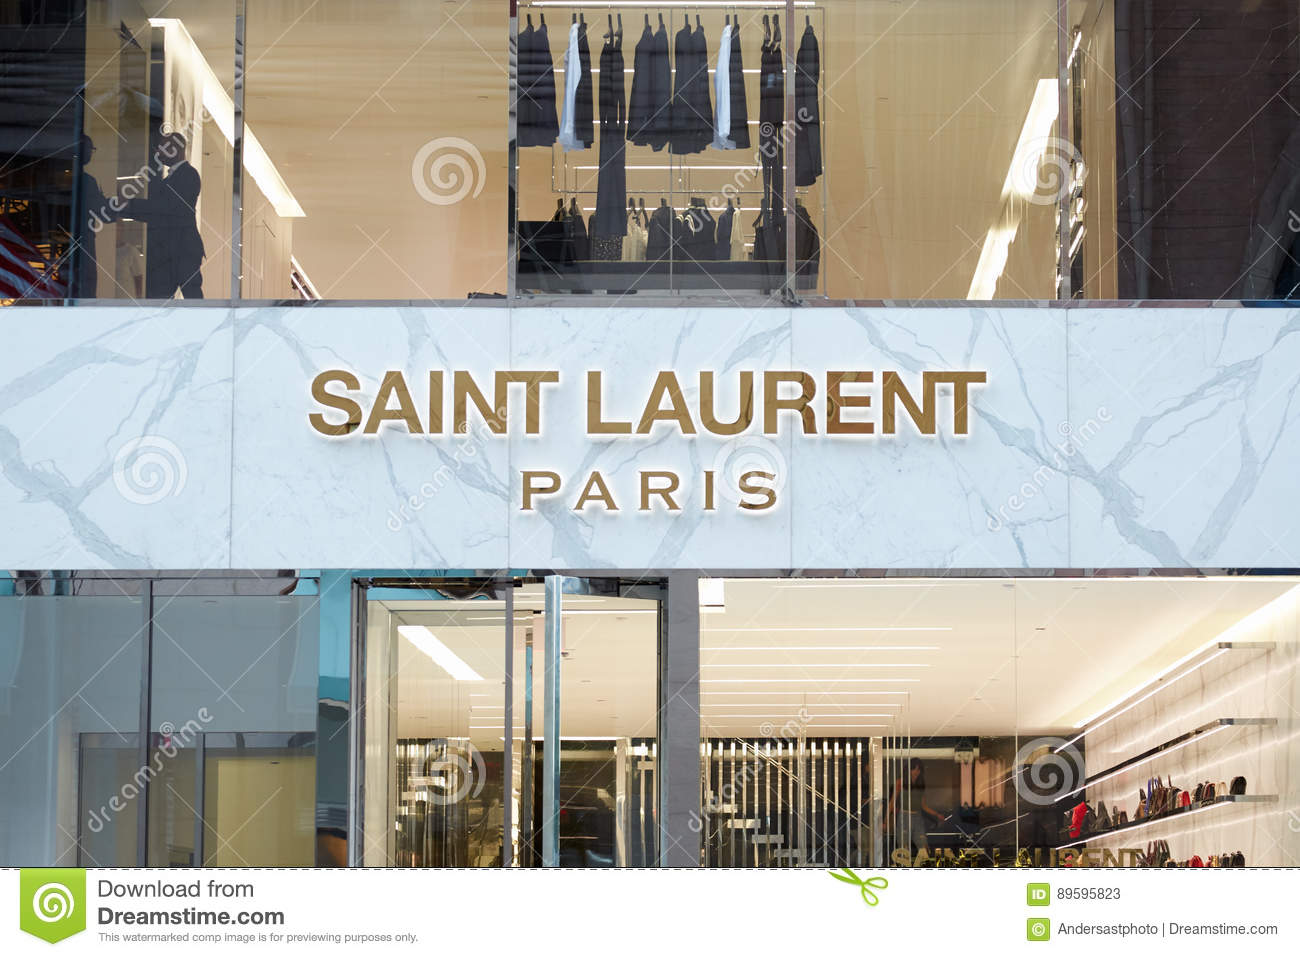 f1052f36e39f4 NEW YORK - SEPTEMBER 12: Saint Laurent store exterior view in 57 Street,  Soho in a sunny day on September 12, 2016 in New York. Yves Saint Laurent  YSL is a ...